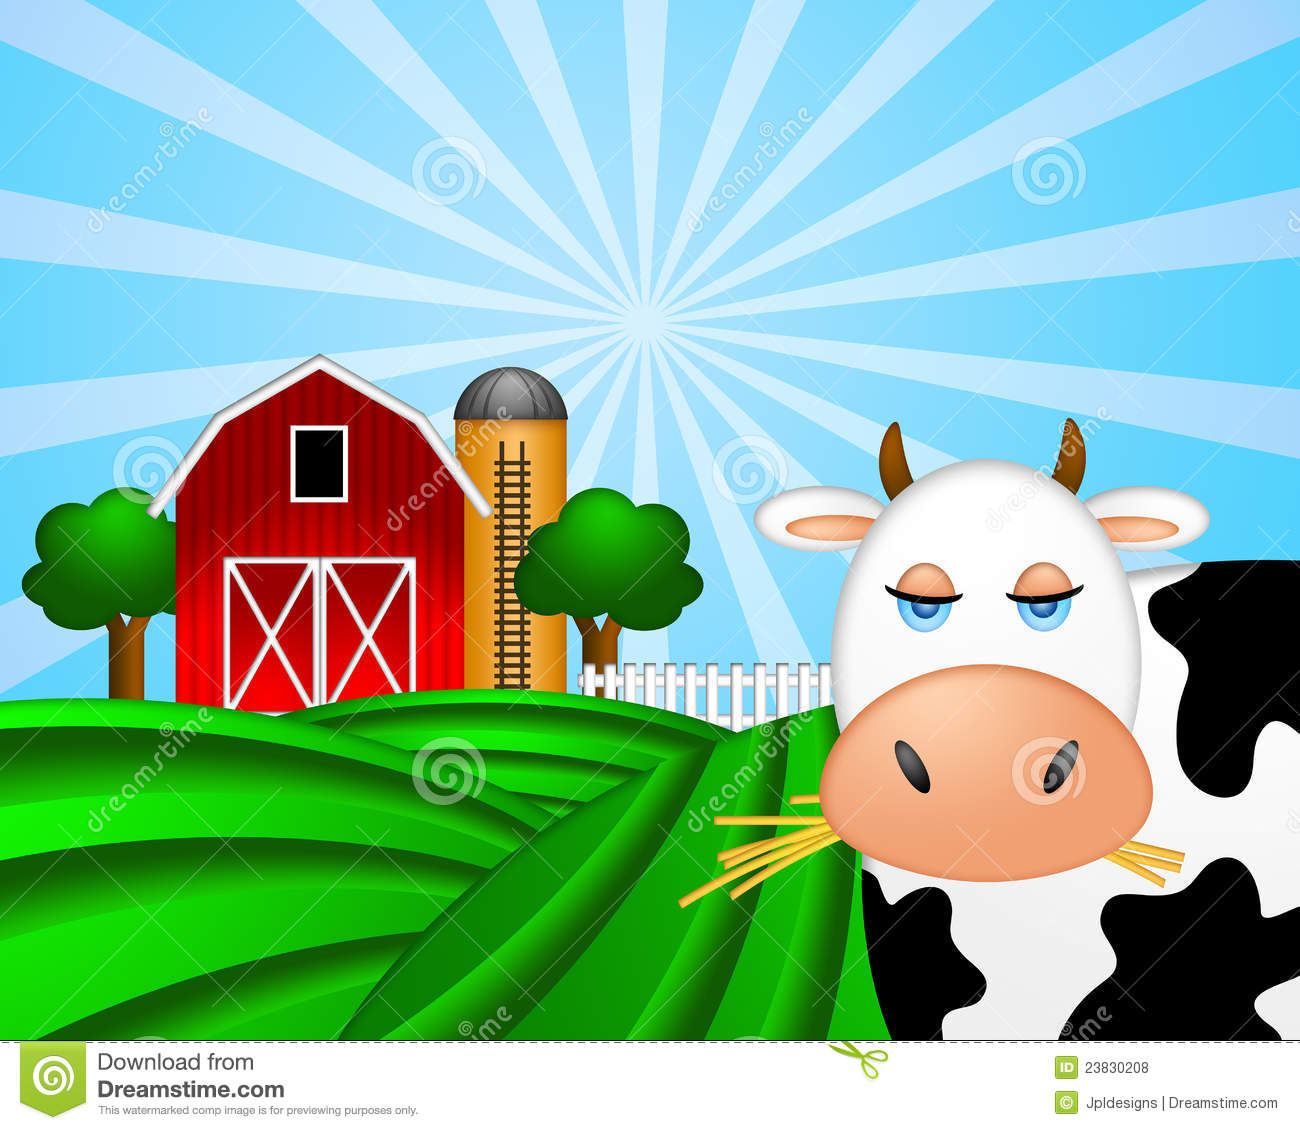 Cow on green pasture with red barn with grain silo royalty free stock photos